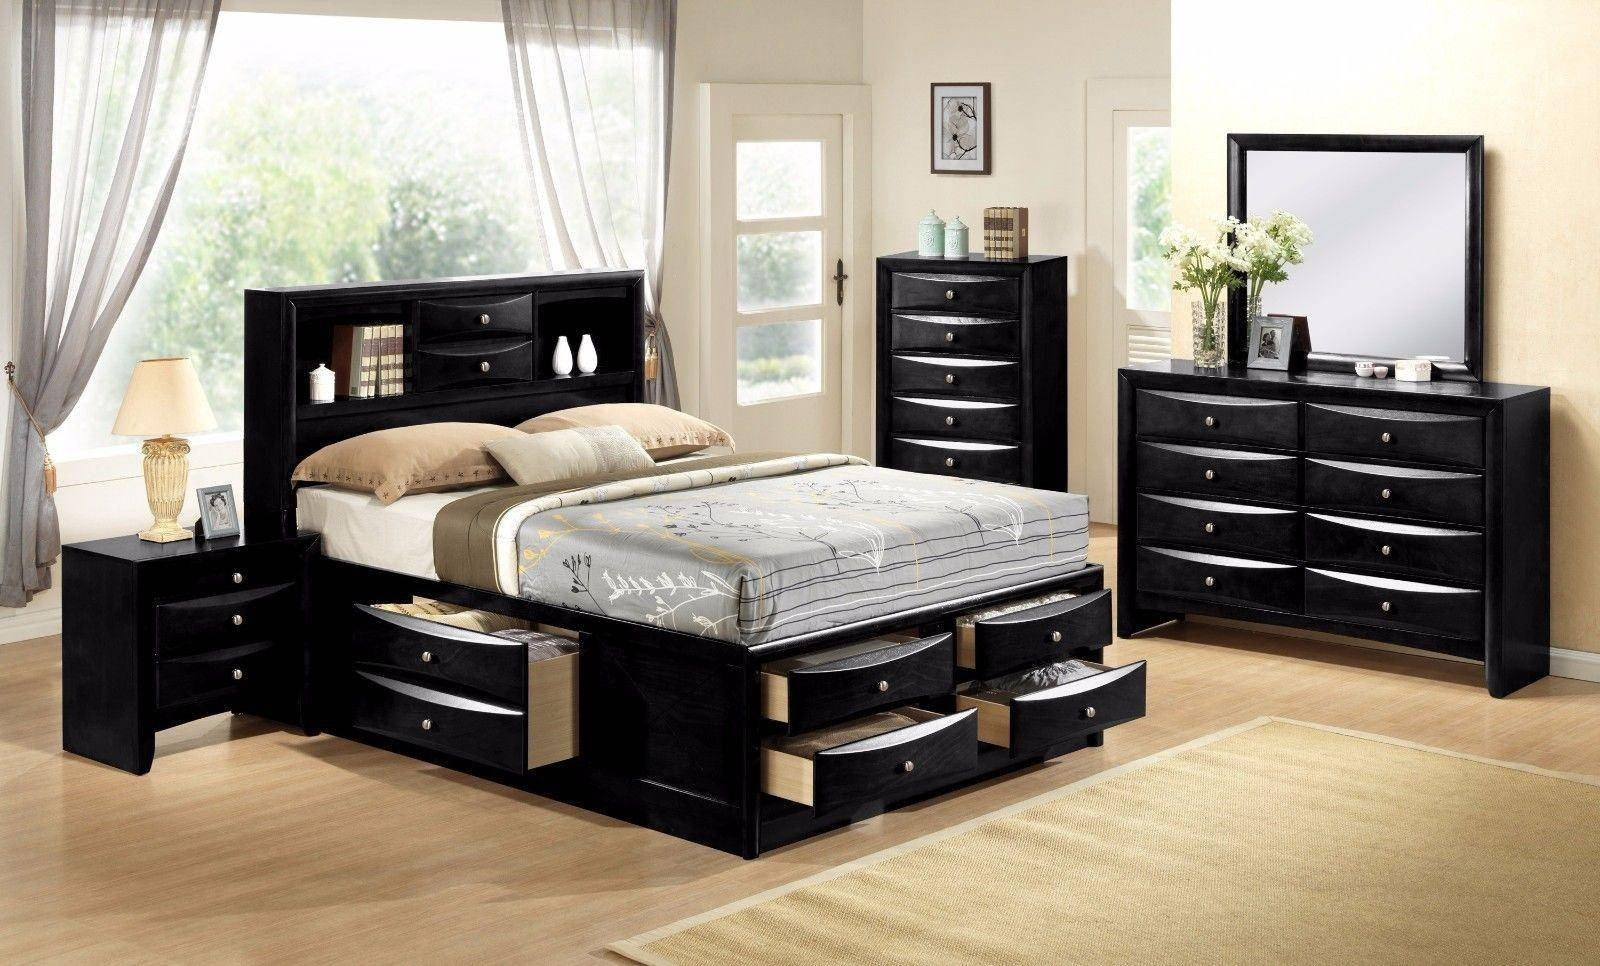 King Size Bedroom Set Cheap New Crown Mark B4285 Emily Modern Black Finish Storage King Size